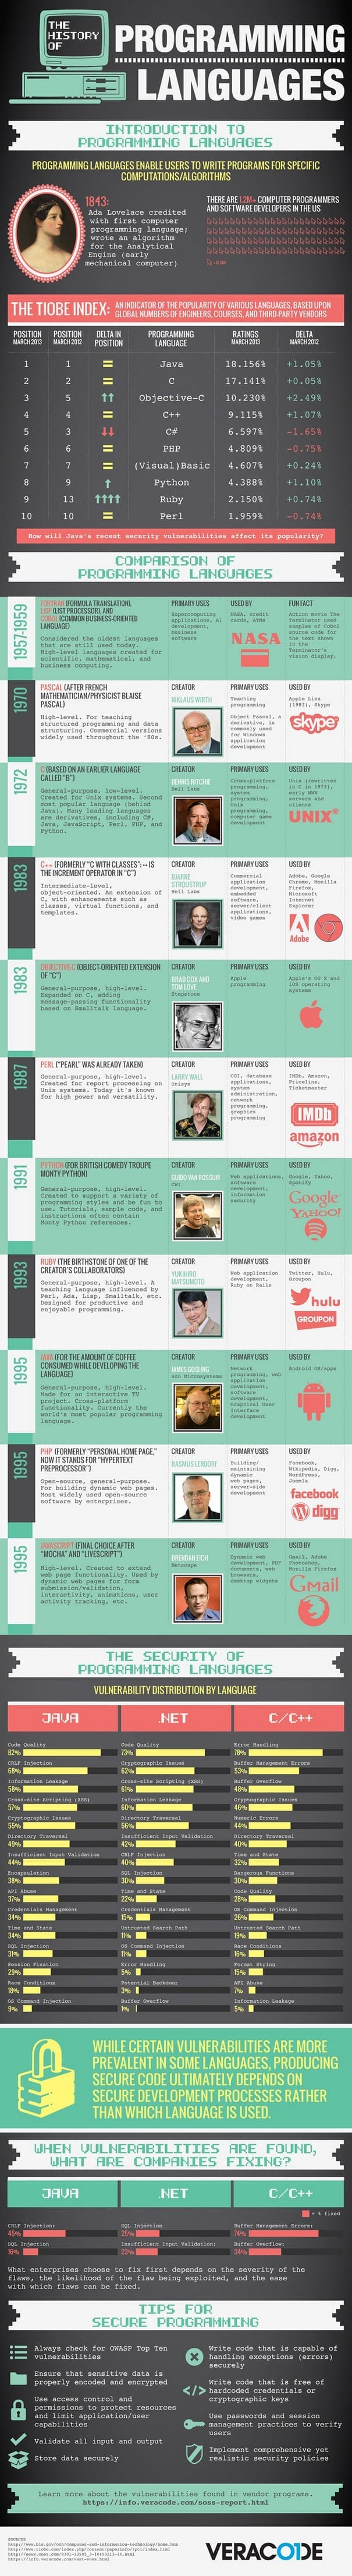 The History of Programming Languages O Reilly Media Infographic